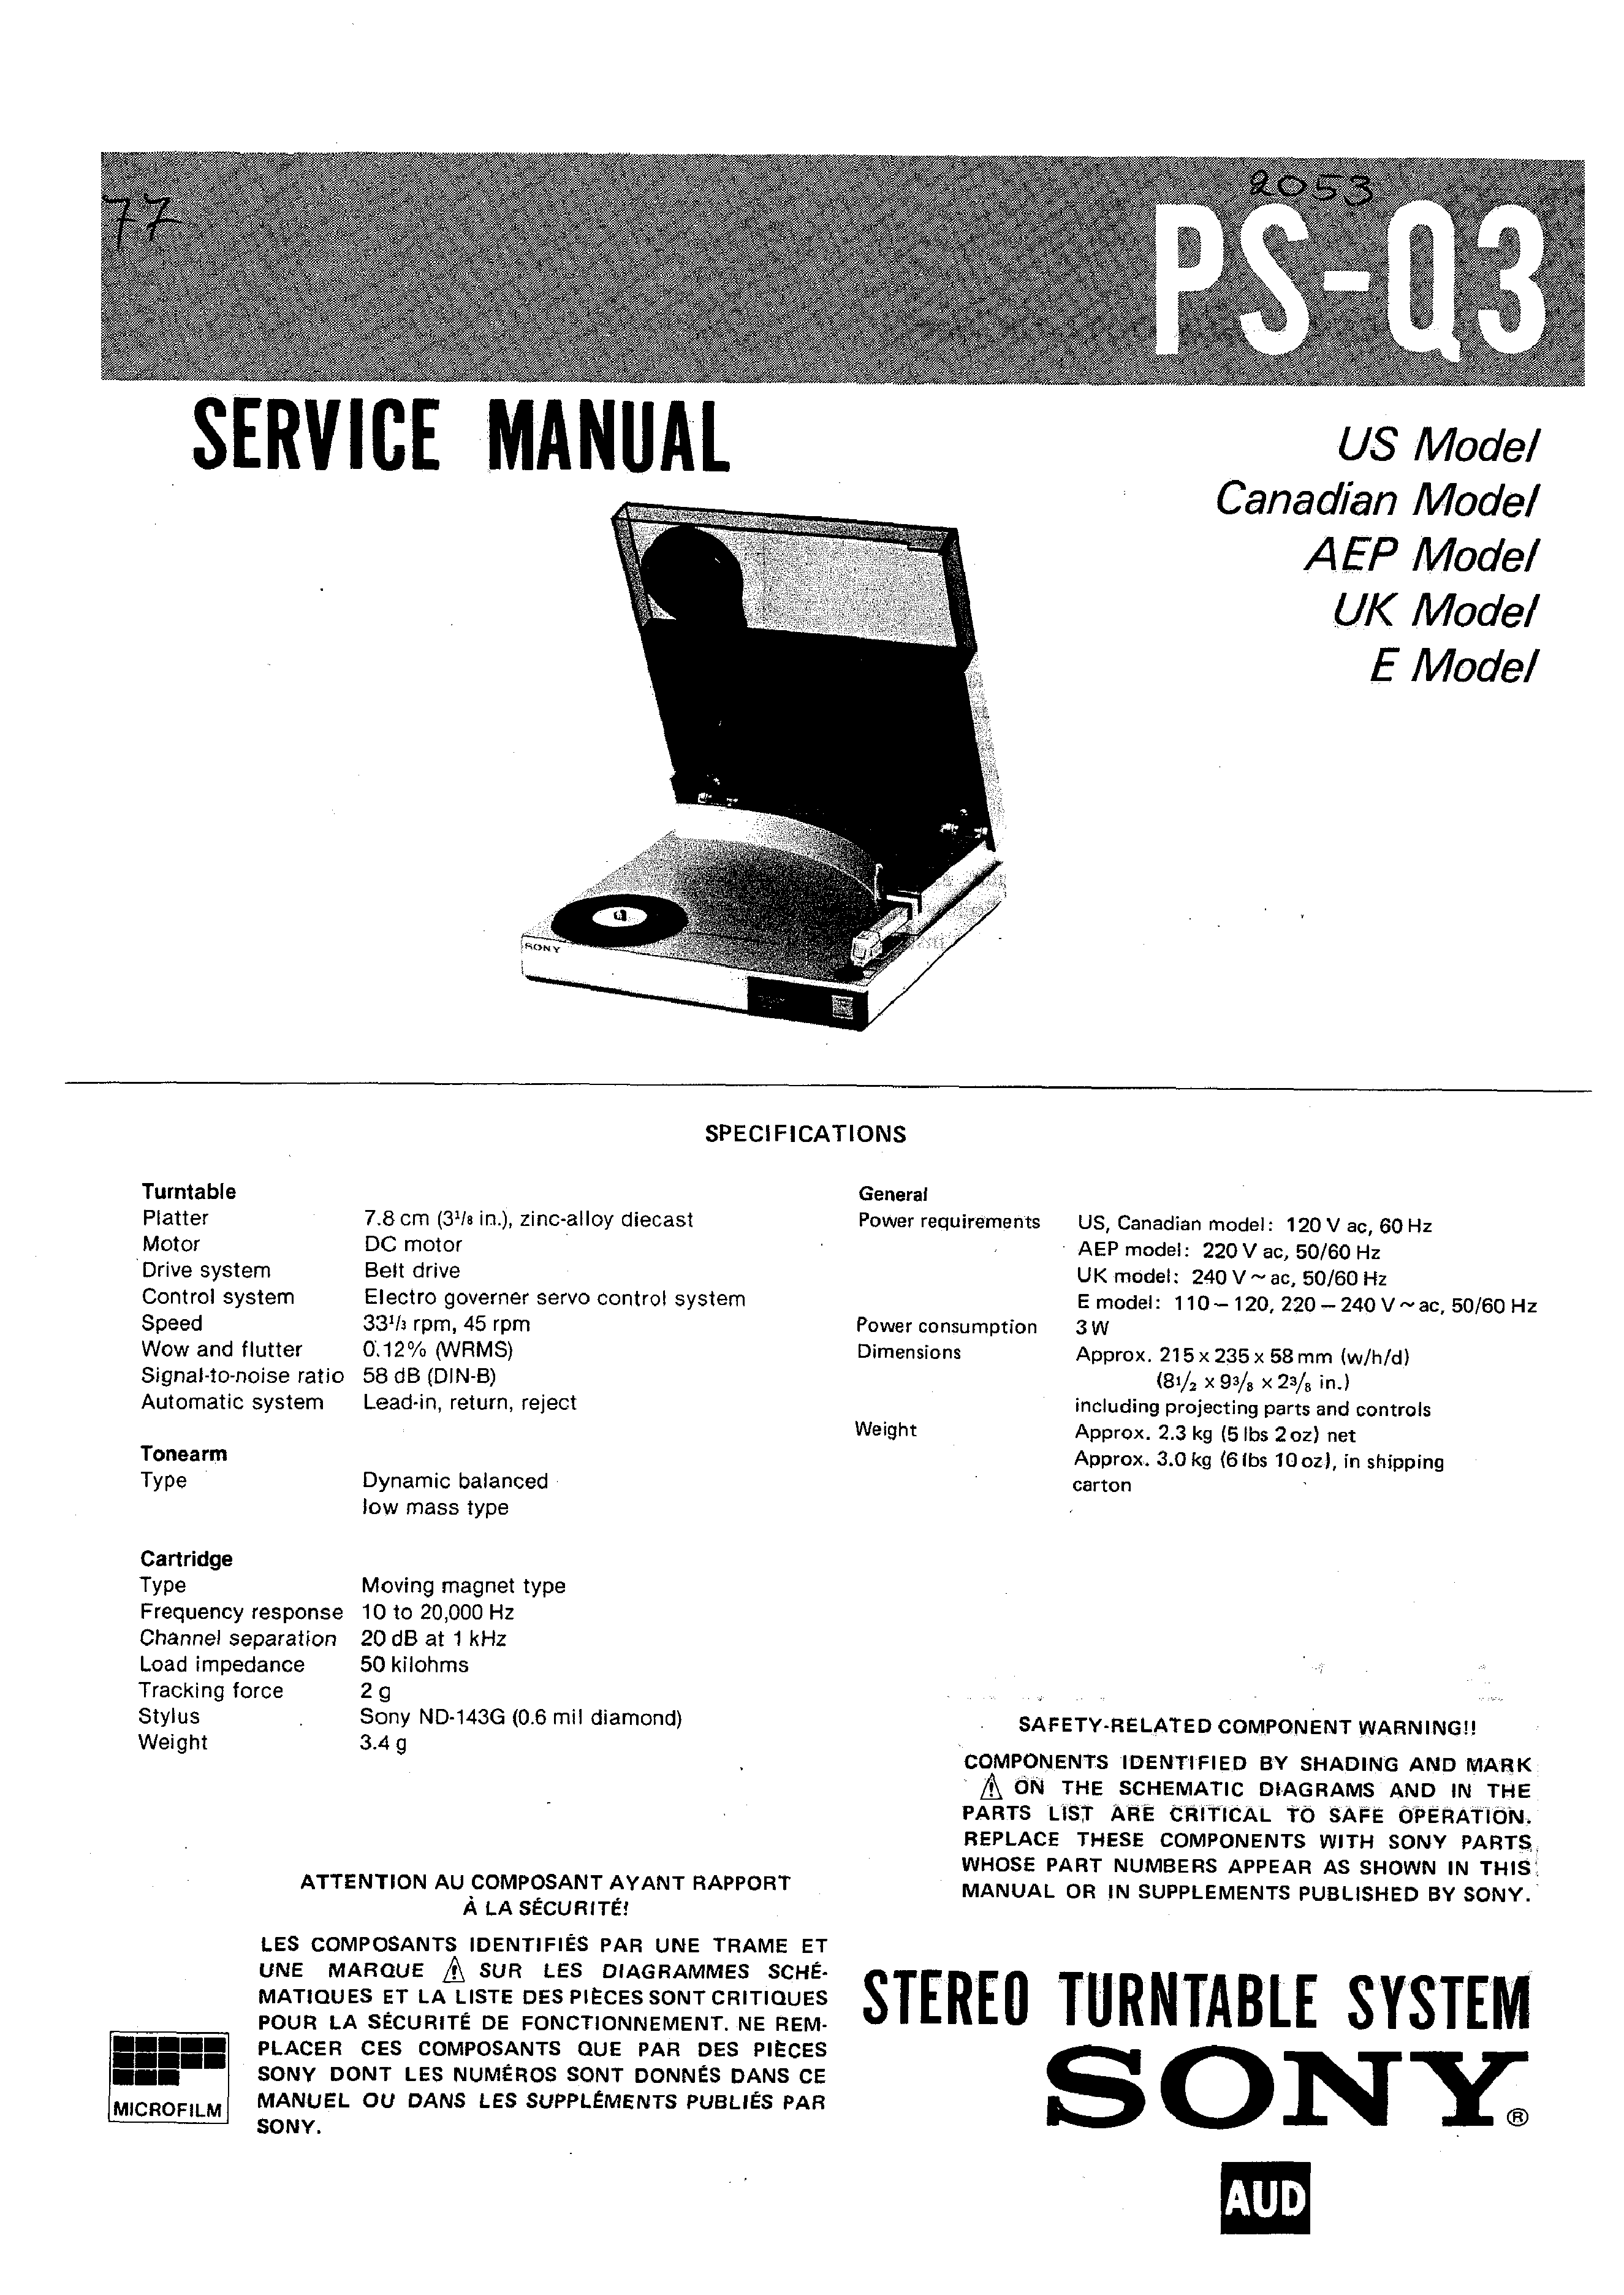 SONY PS-Q3 - Service Manual Immediate Download